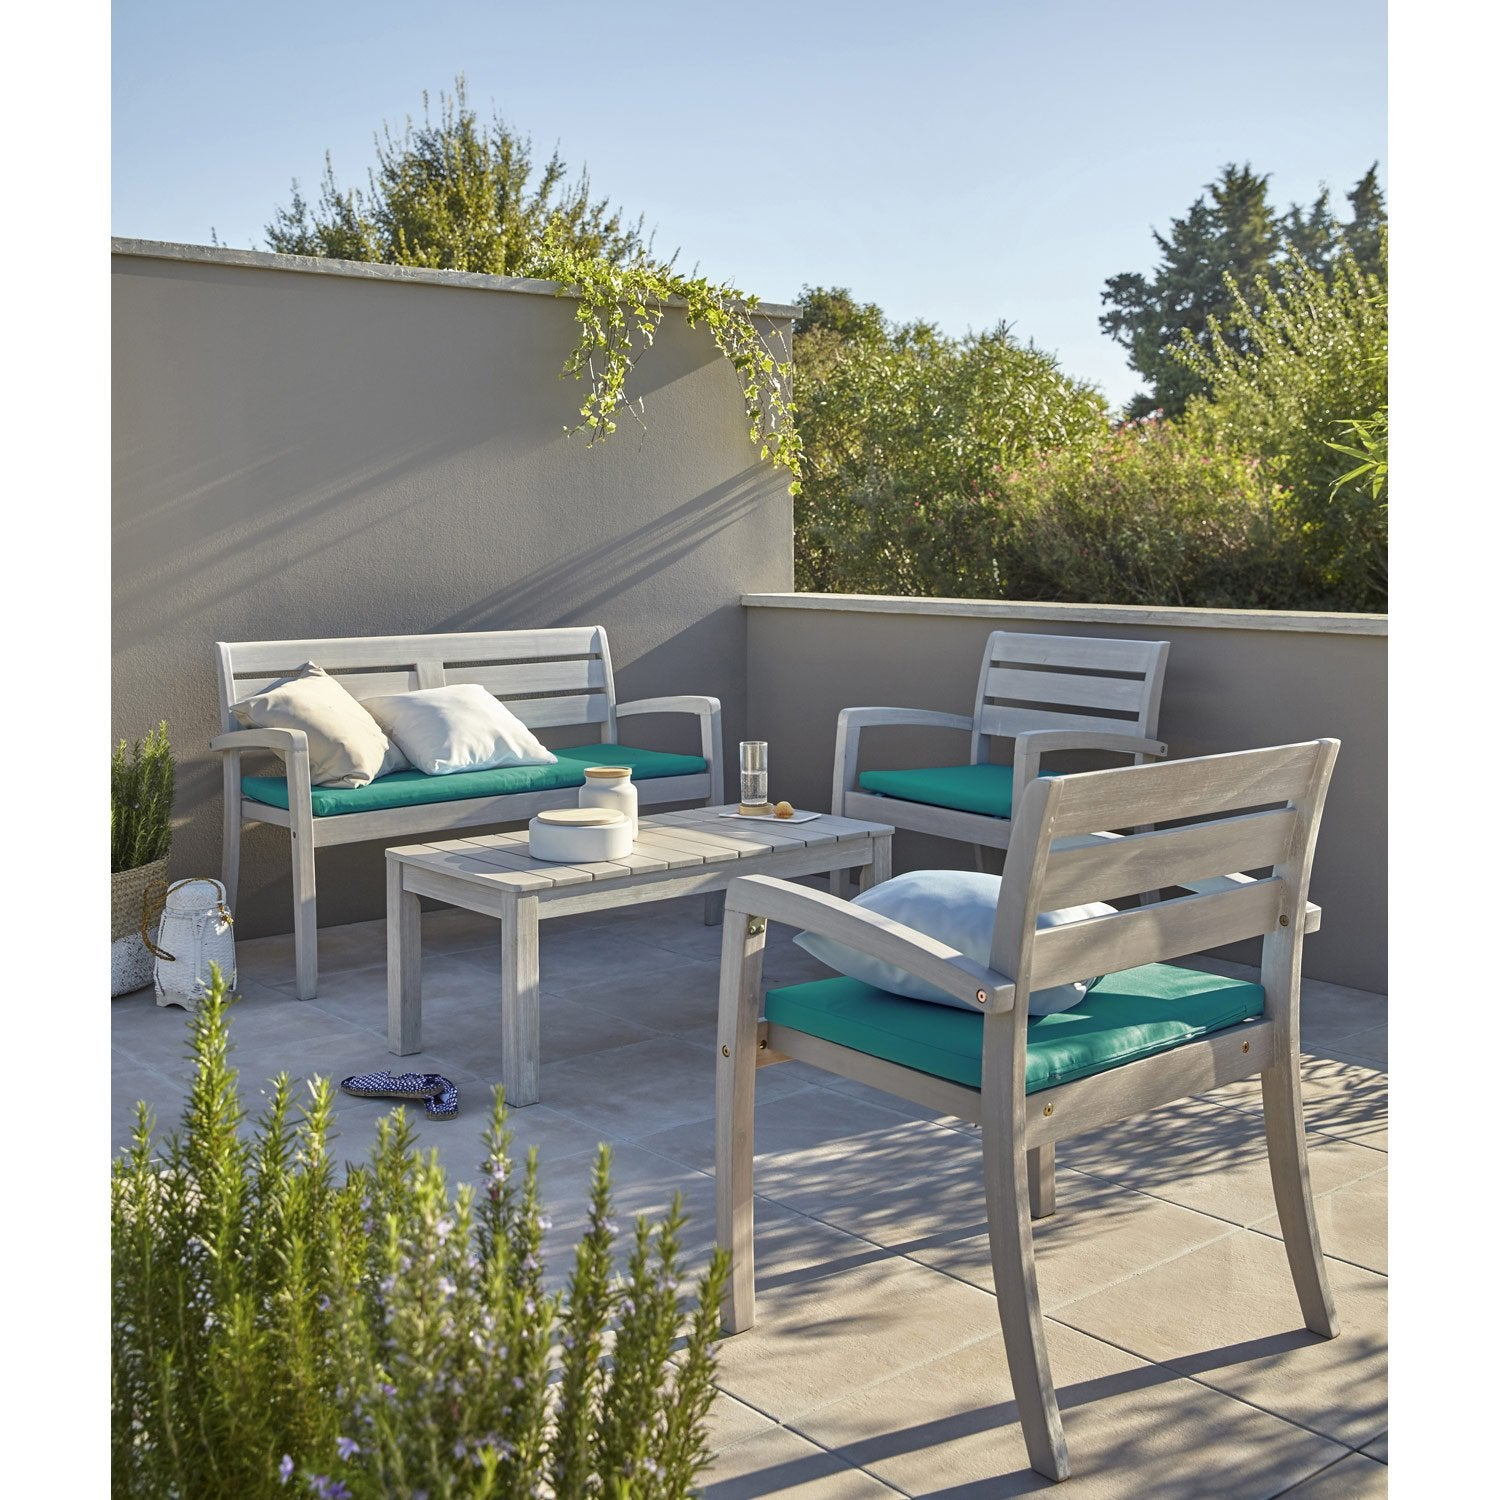 salon de jardin portofino bois naturel 1 table 2 fauteuils 1 banc leroy merlin. Black Bedroom Furniture Sets. Home Design Ideas